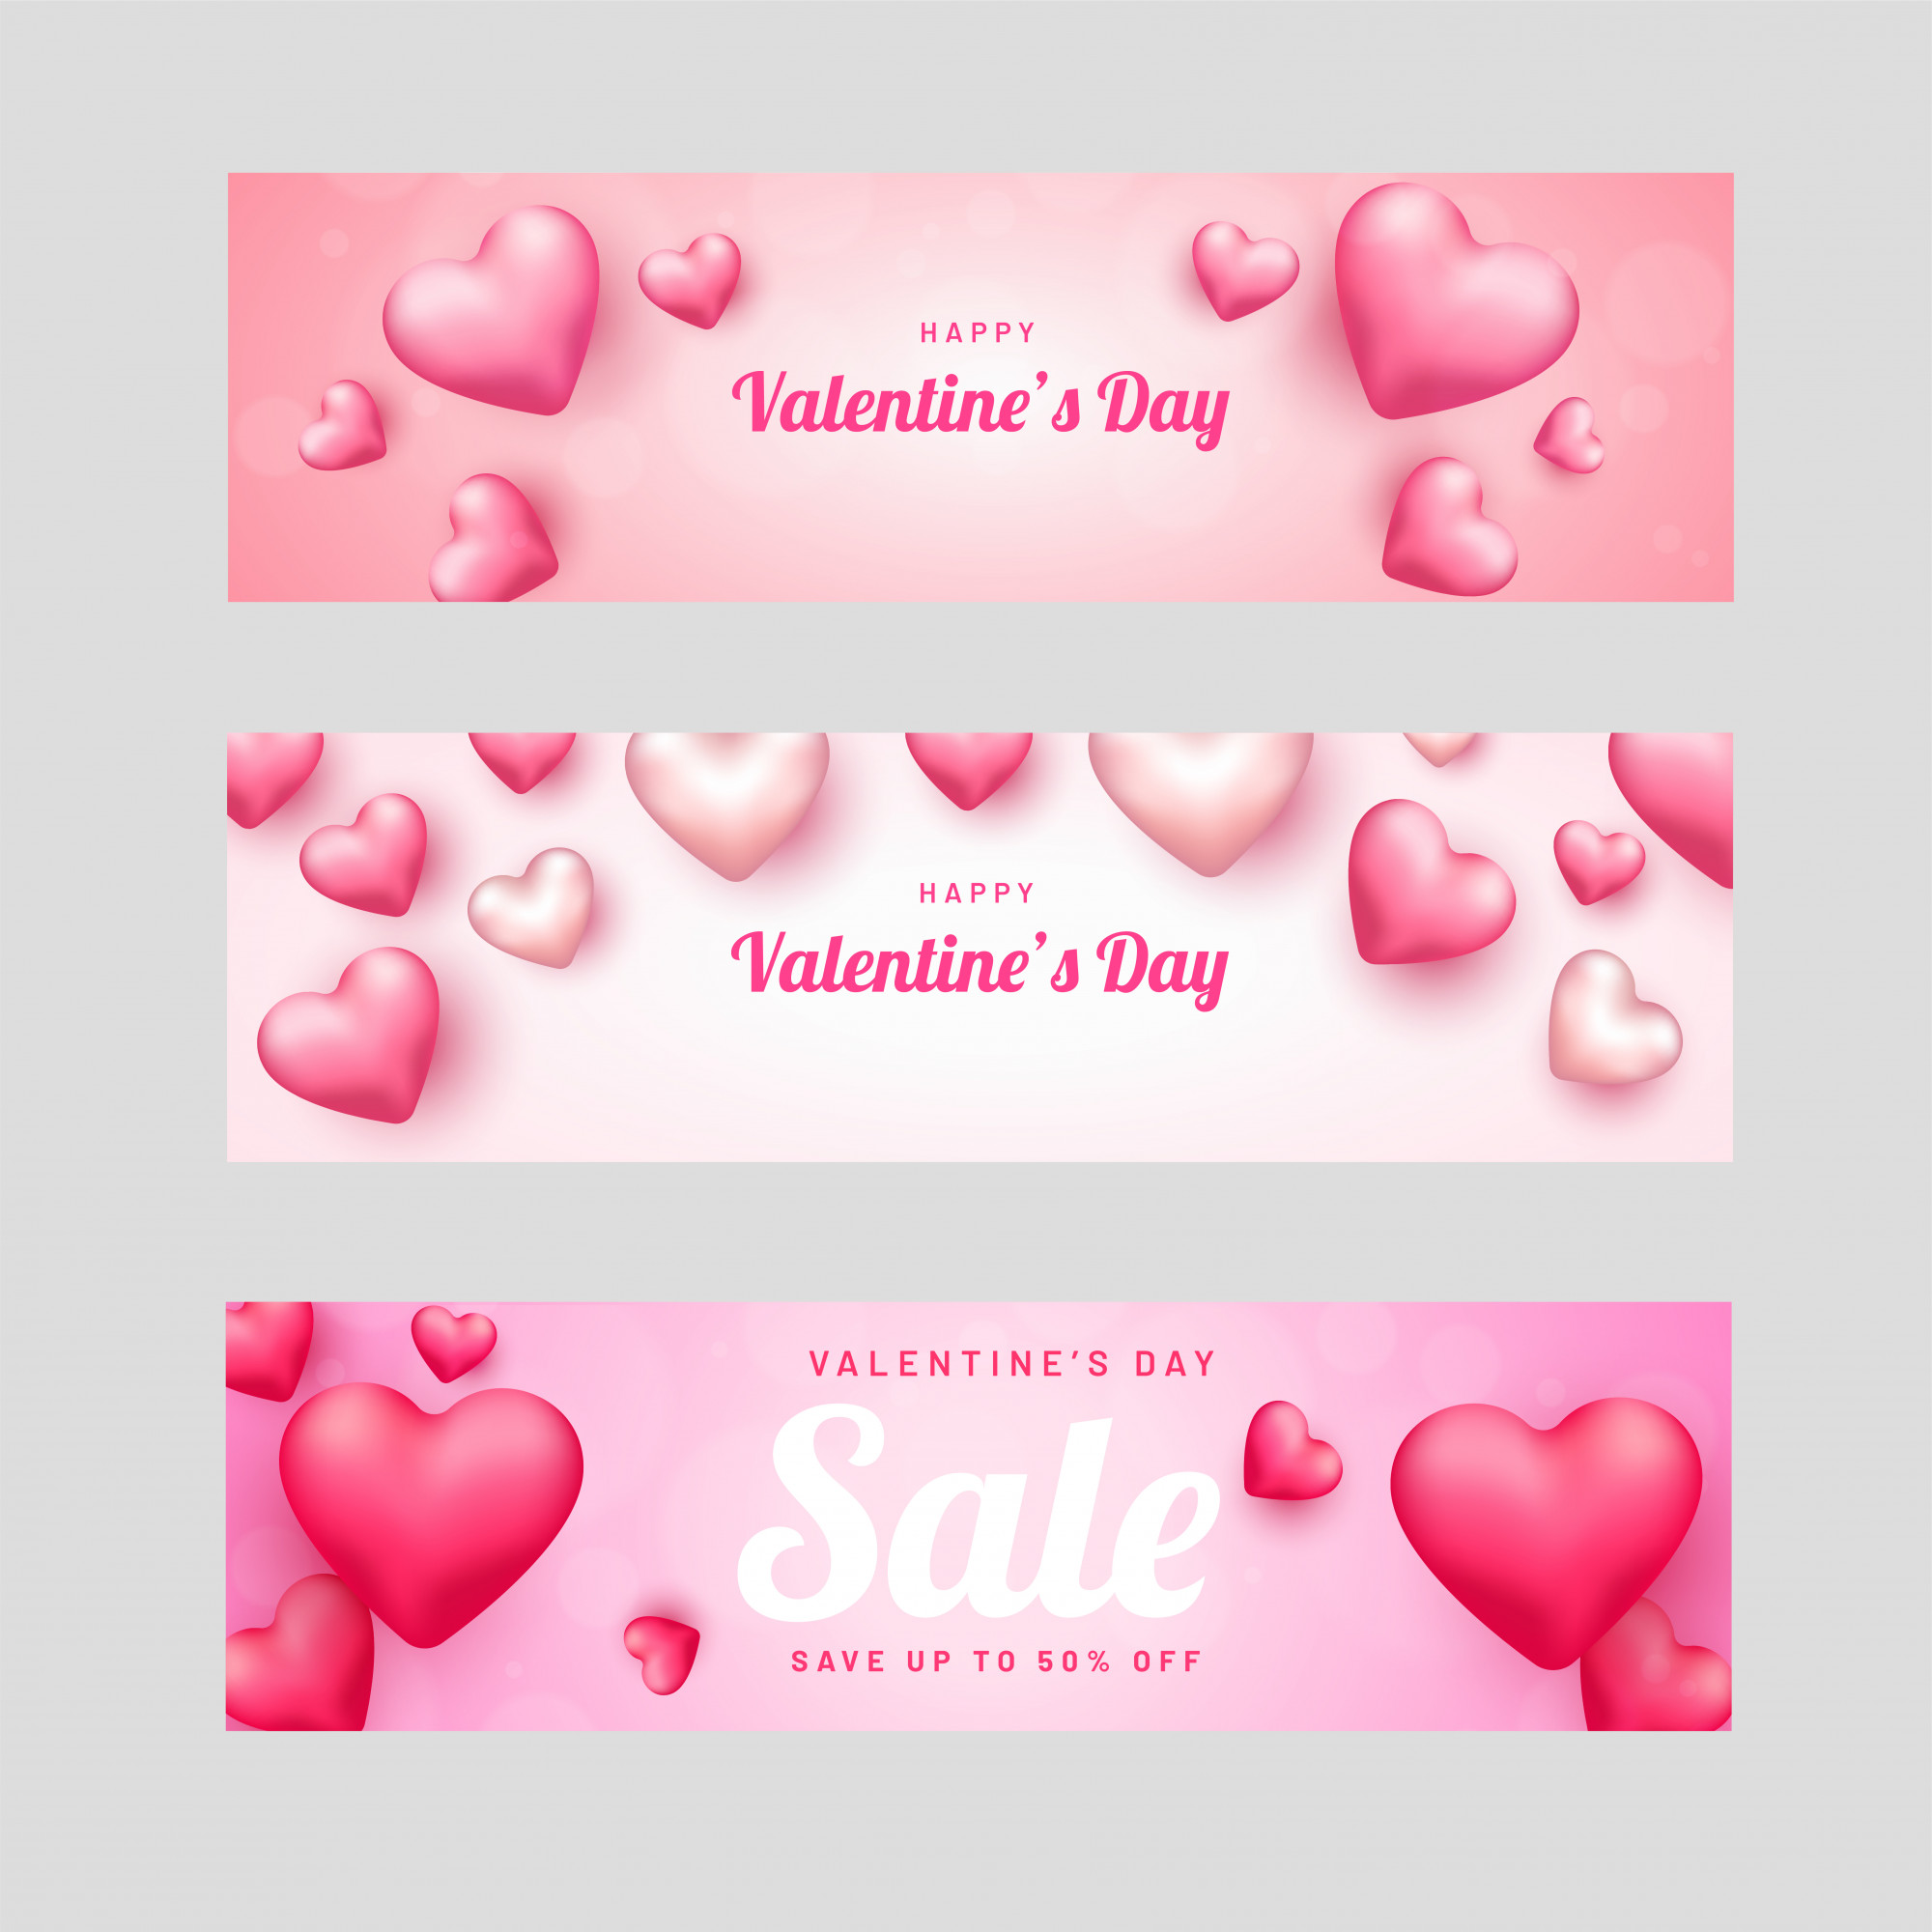 Promotional header or banner set for Valentine's Day decorated